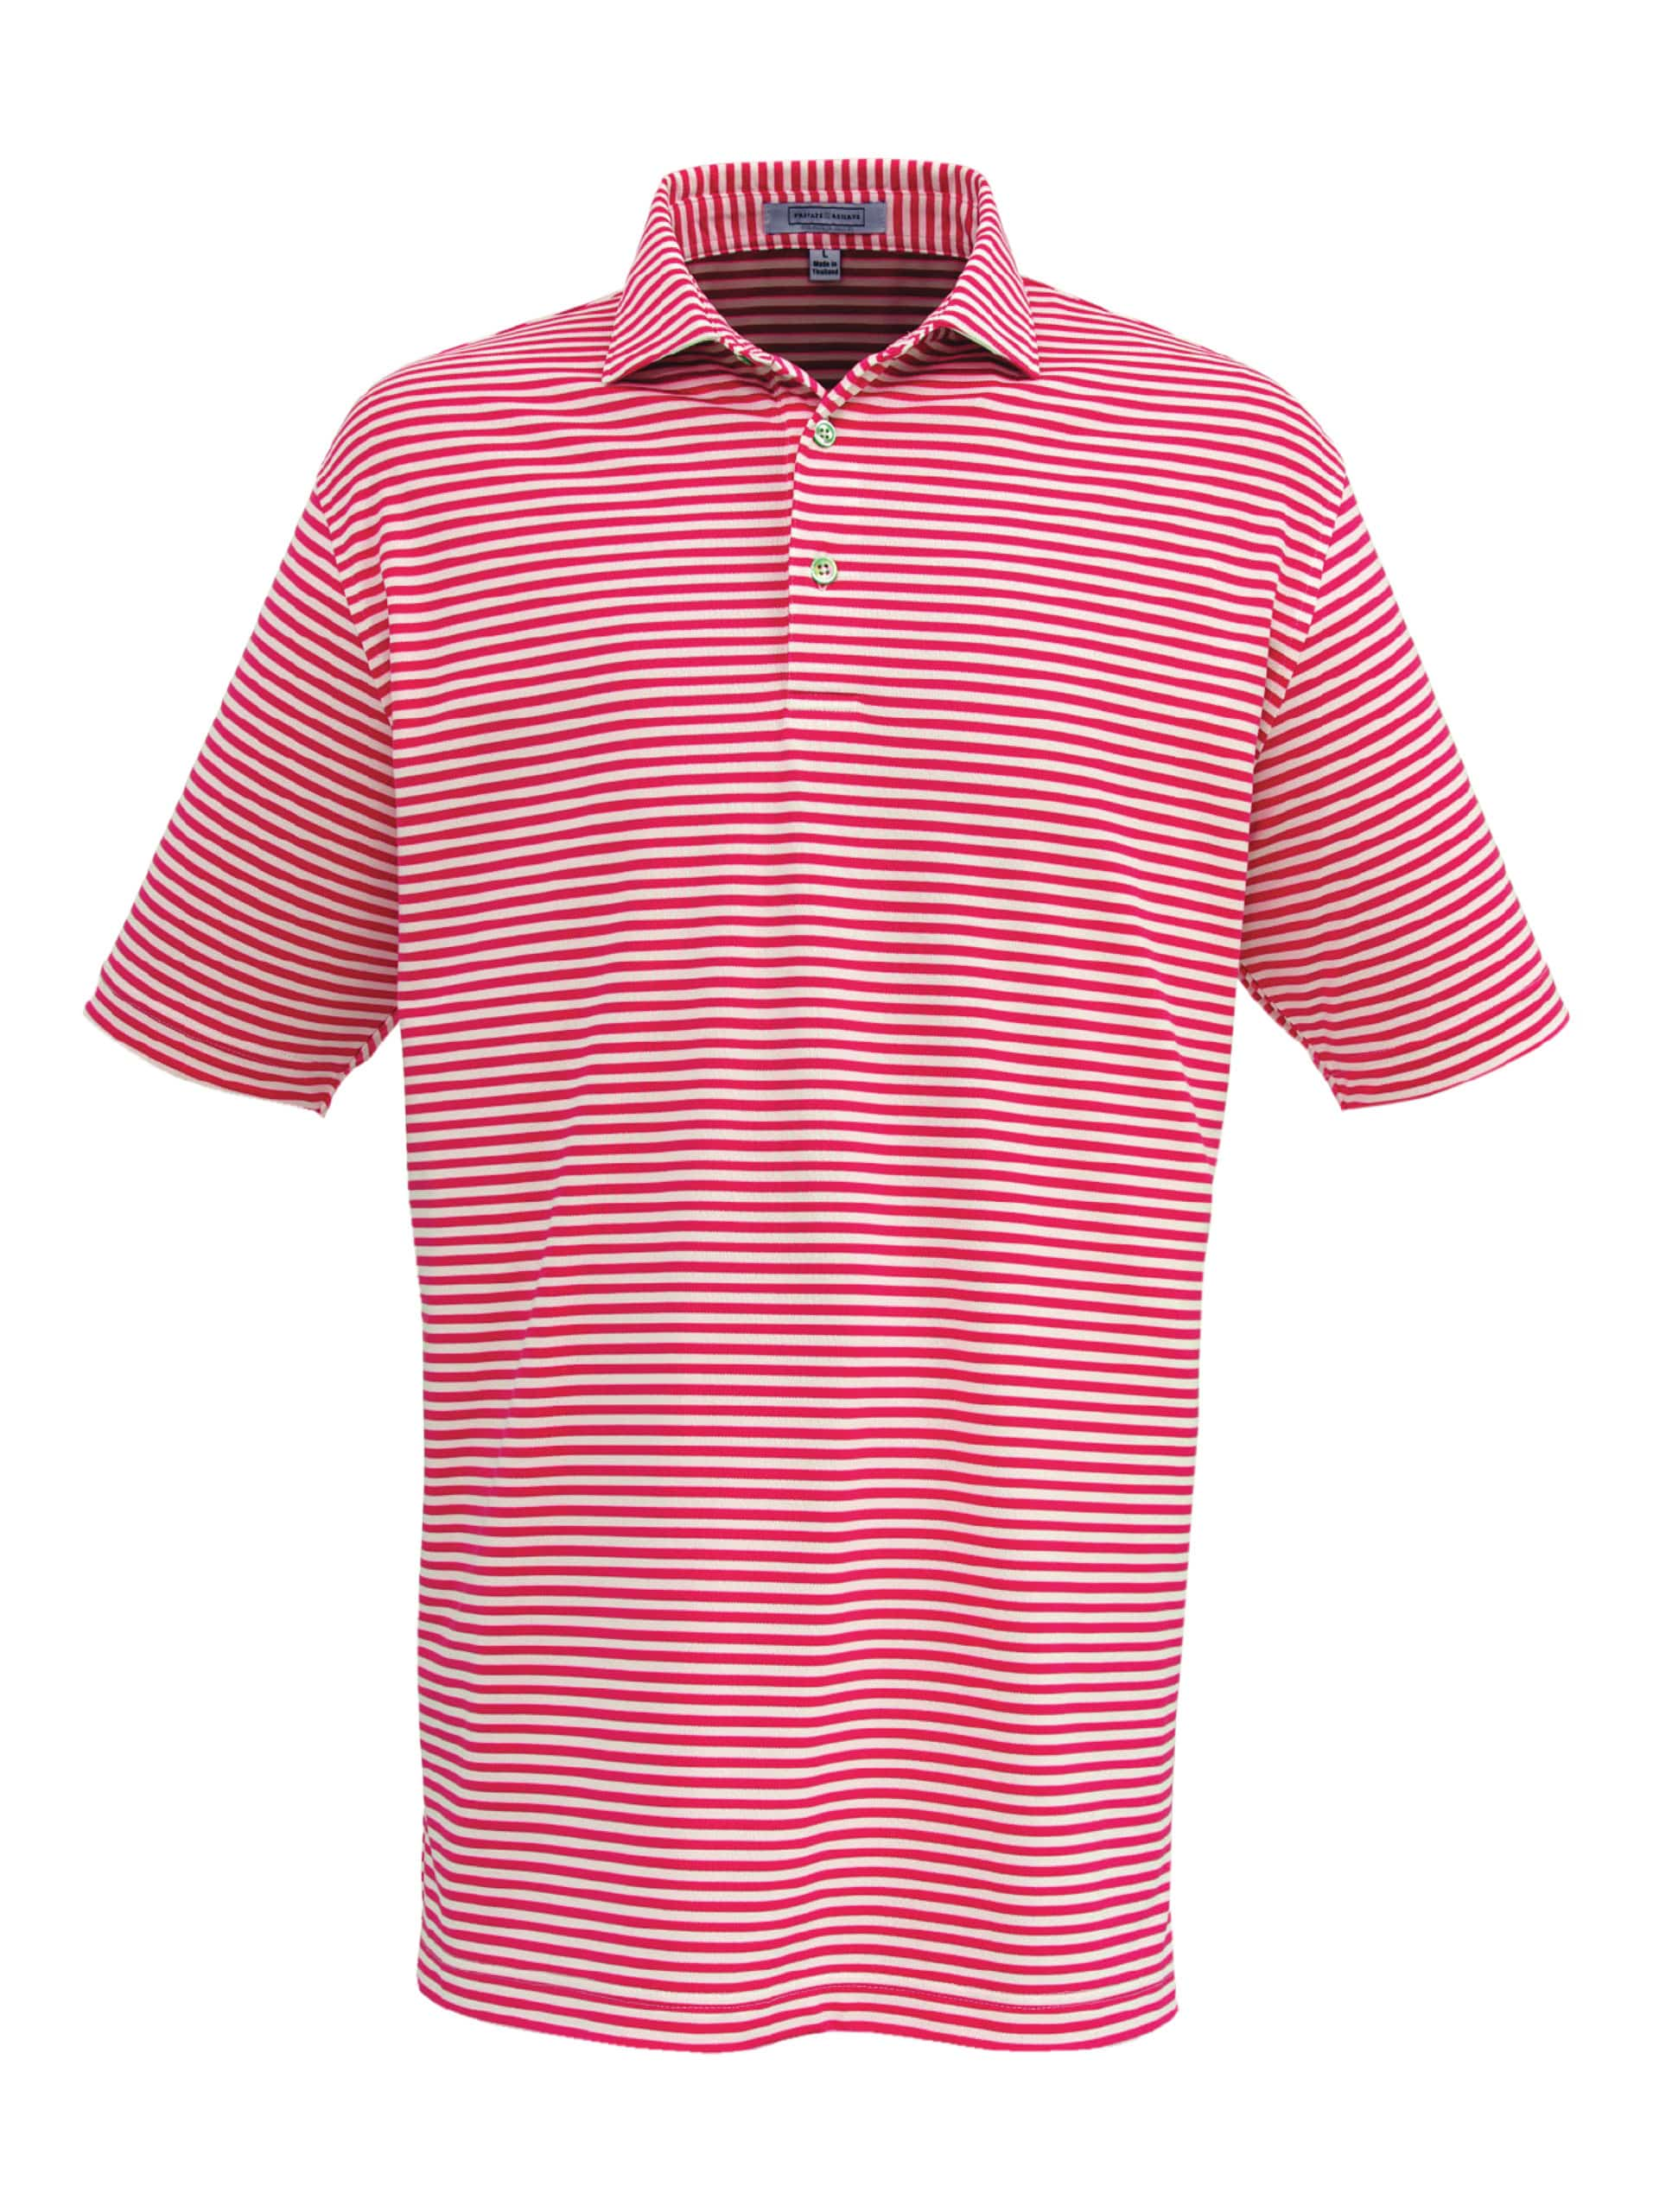 Cranberry striped Private Estate polo shirt for men